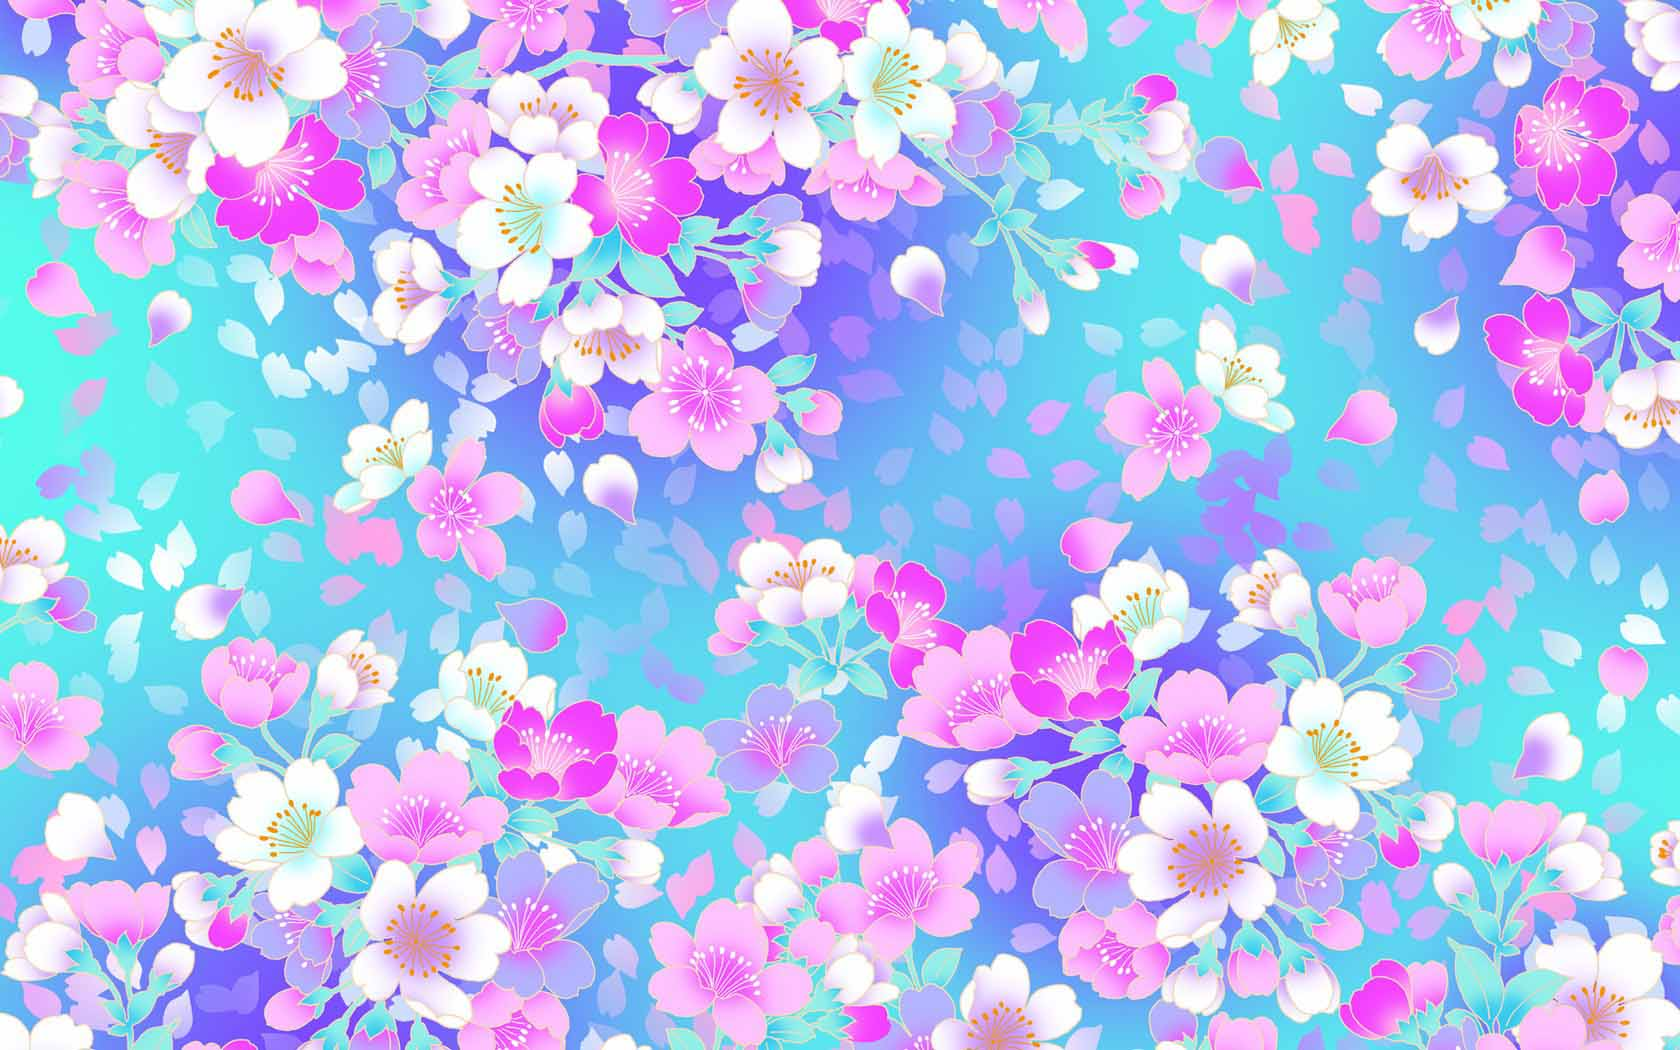 Free vintage cute floral background free vector download